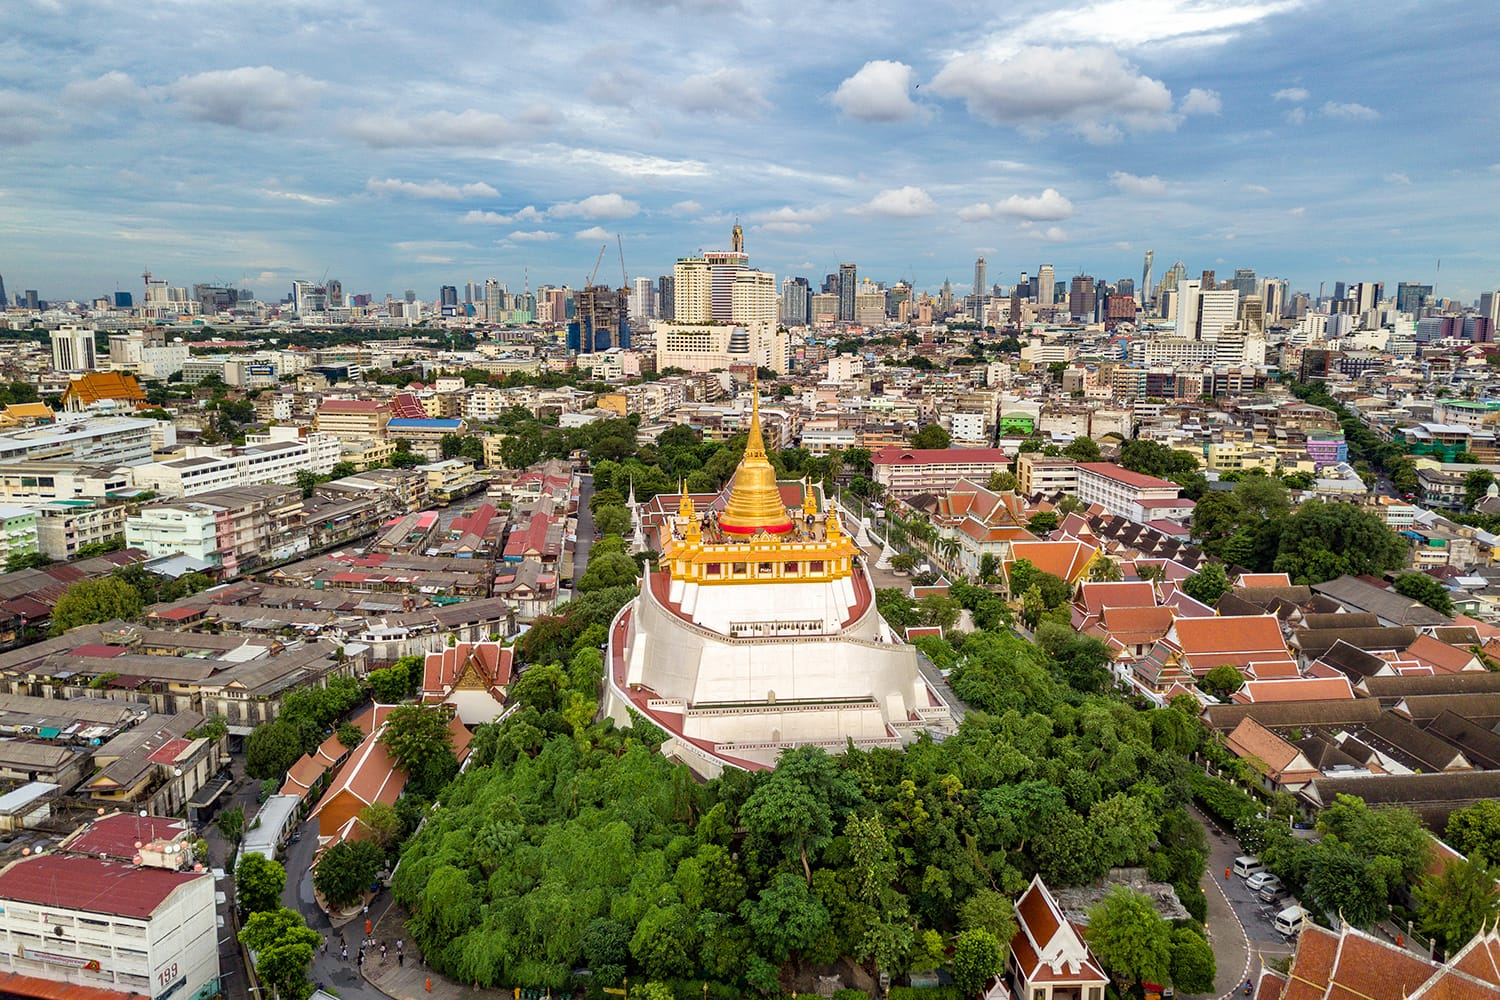 Aerial view of Wat Saket in Bangkok, Thailand